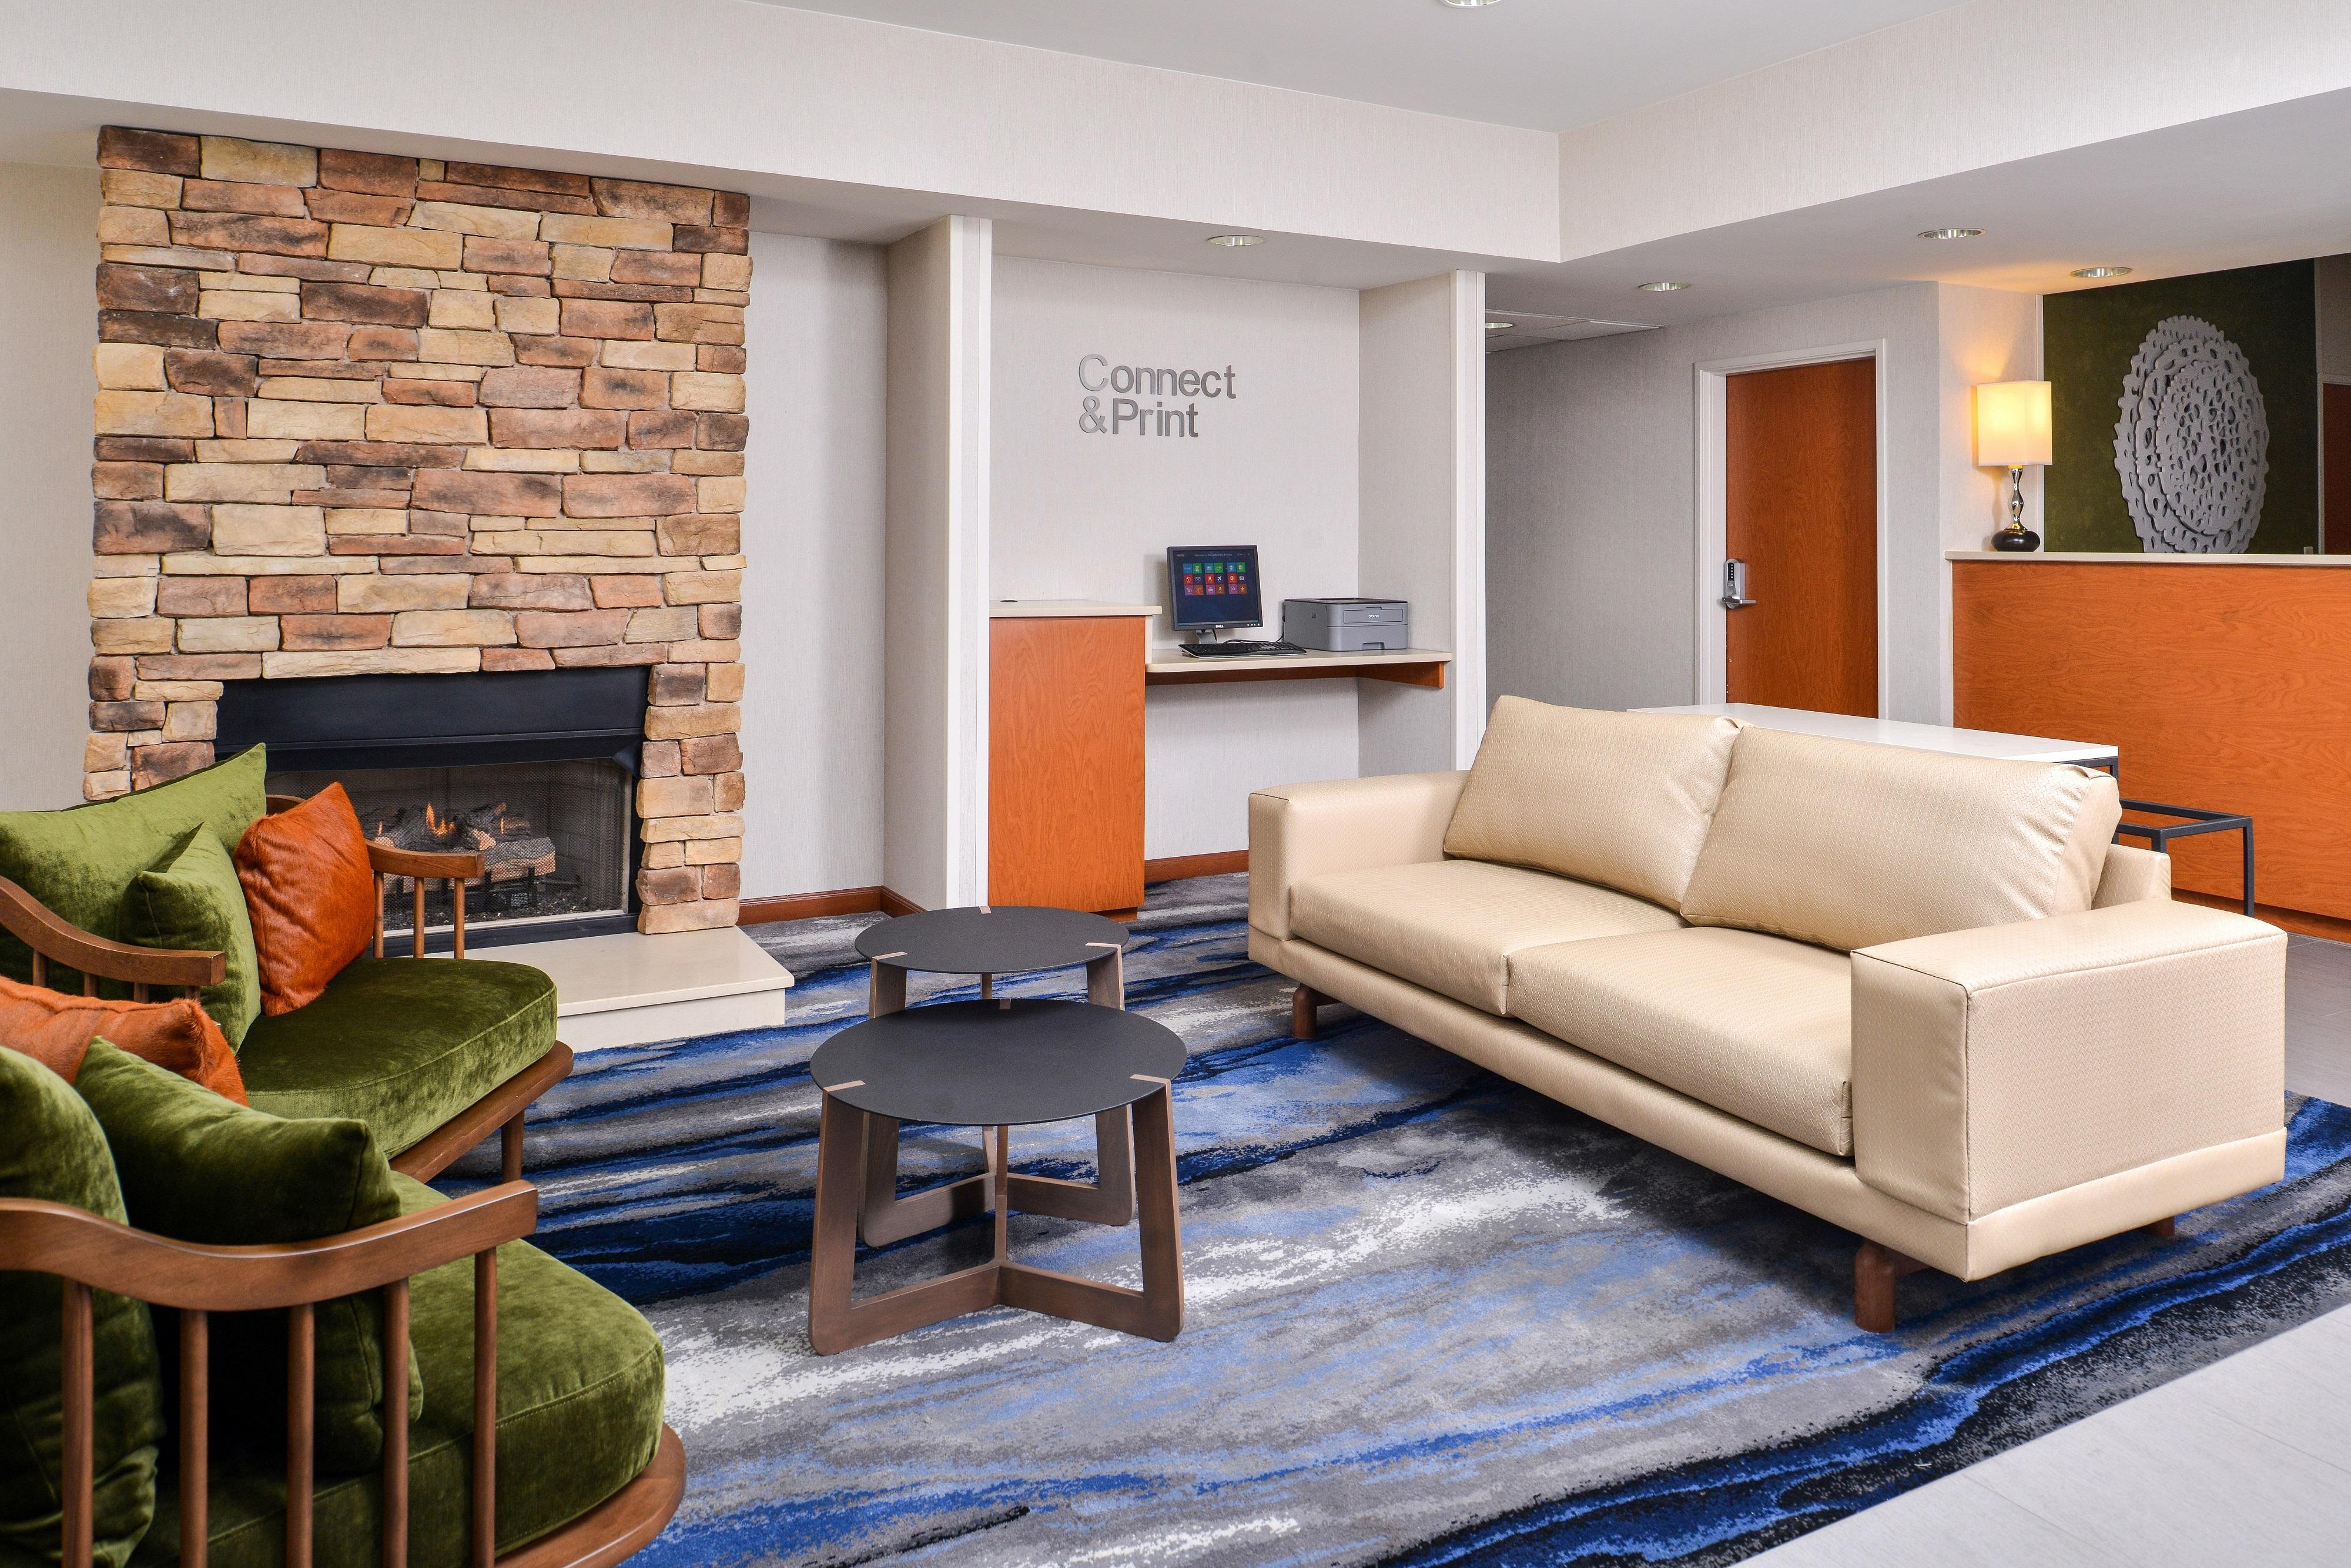 Fairfield Inn & Suites by Marriott Ocala image 6